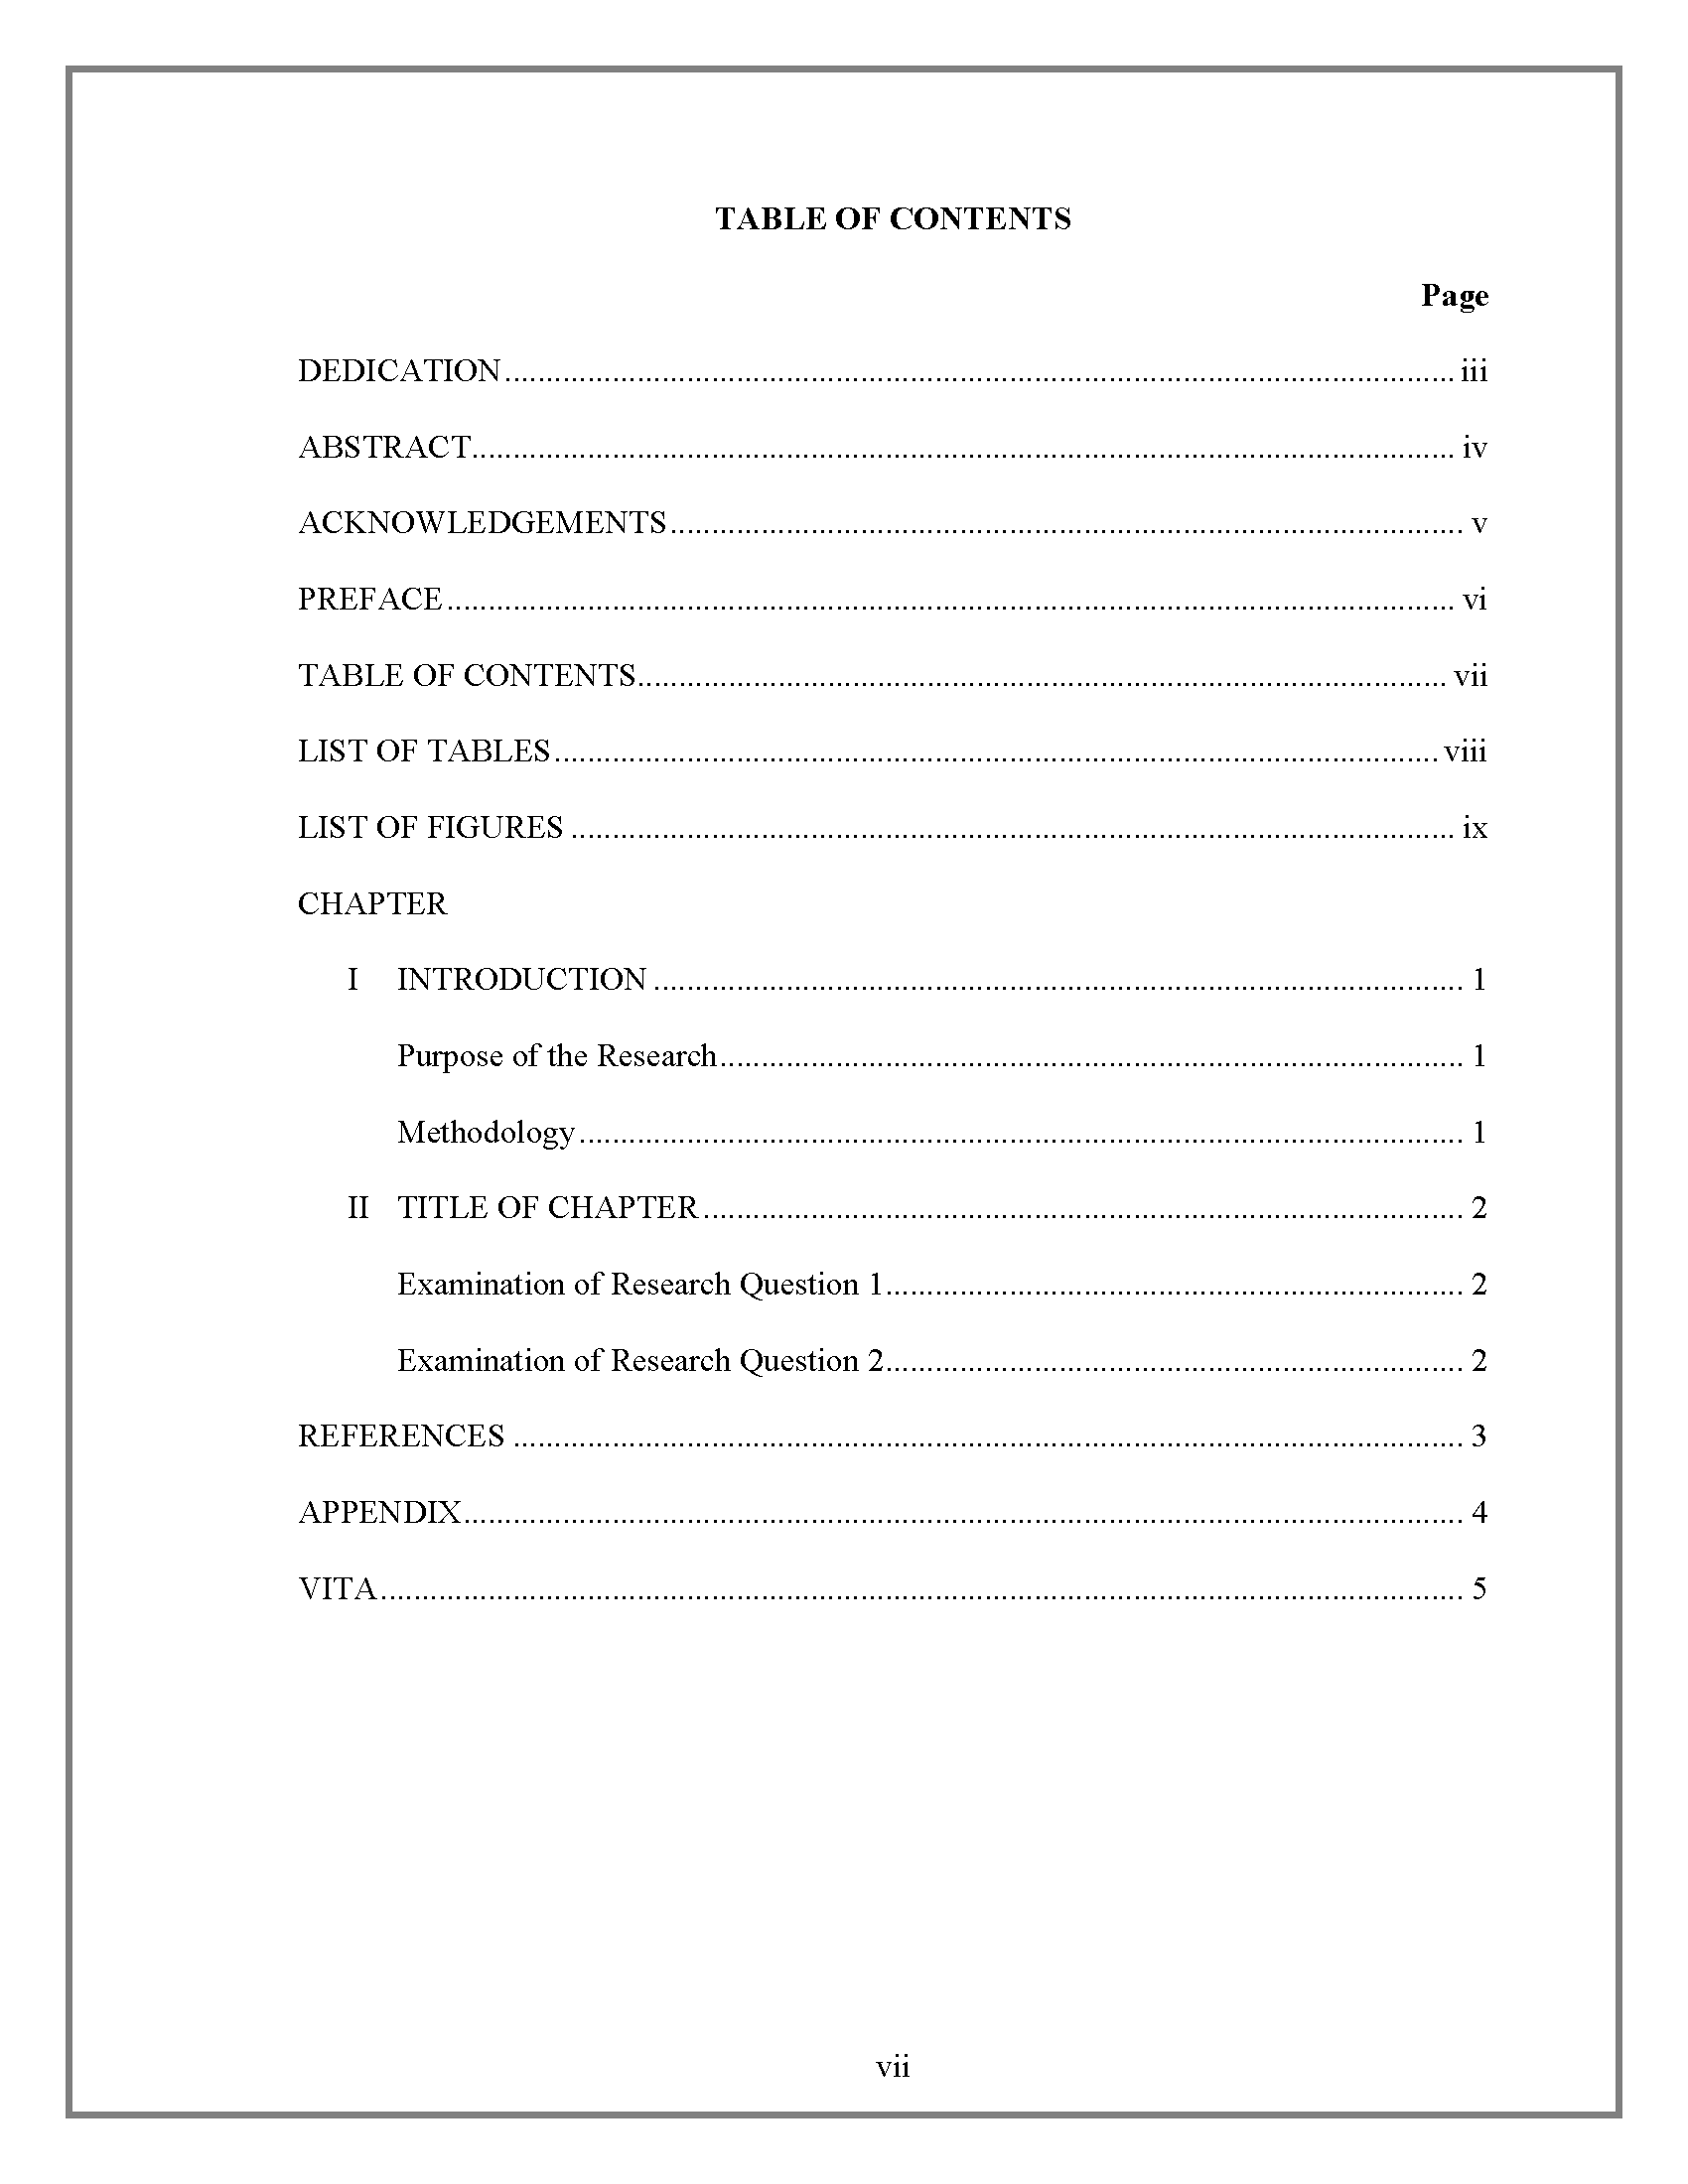 008 Research Paper Table Ofborder Apa Template With Of Surprising Contents Full